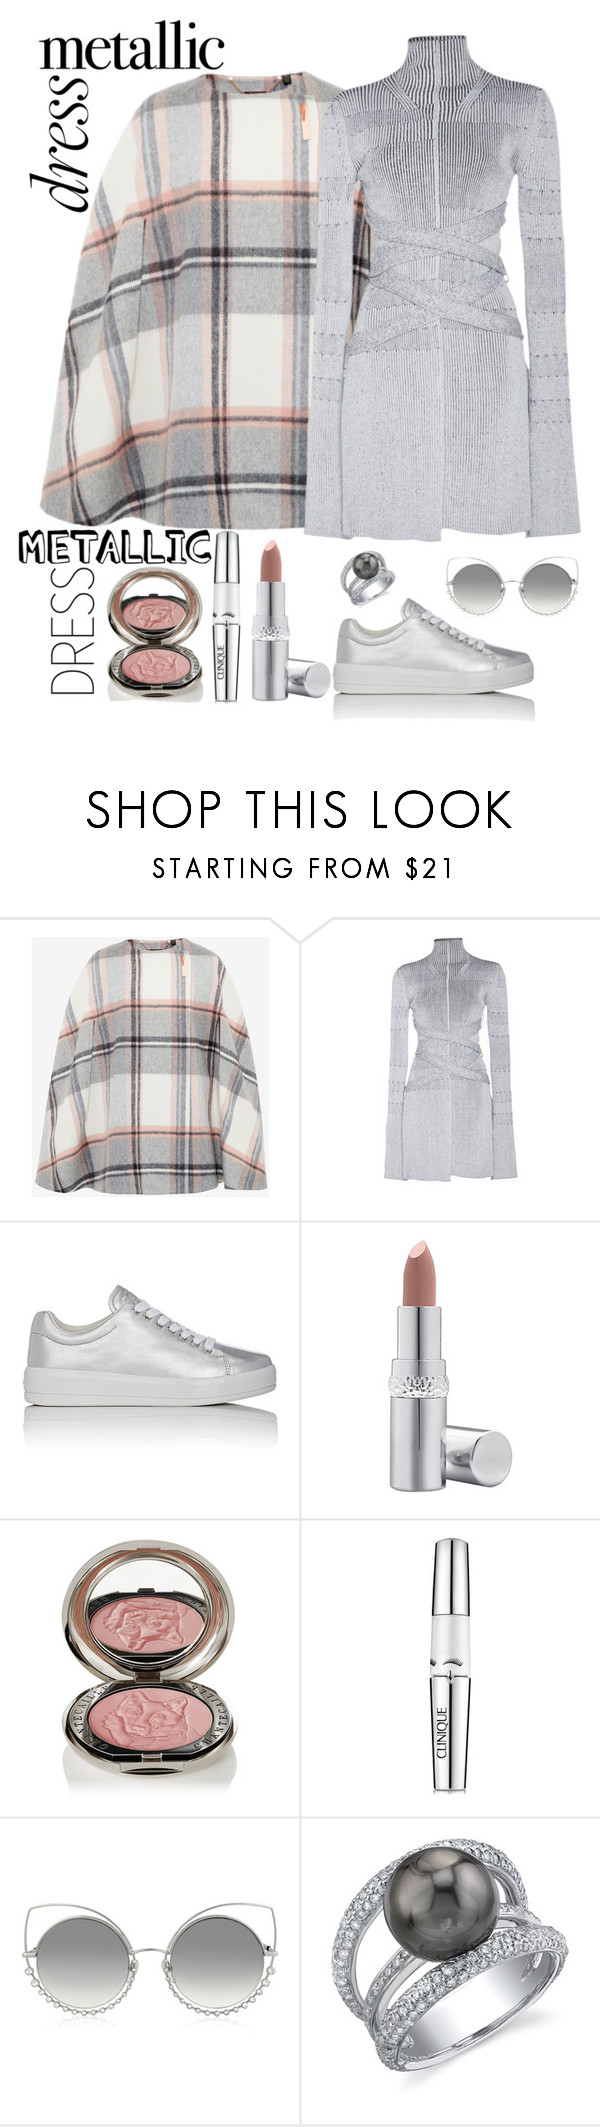 """""""Metallic Stuff"""" by loves-elephants ❤ liked on Polyvore featuring Ted Baker, Proenza Schouler, Prada Sport, La Prairie, Chantecaille, Clinique and Marc Jacobs"""